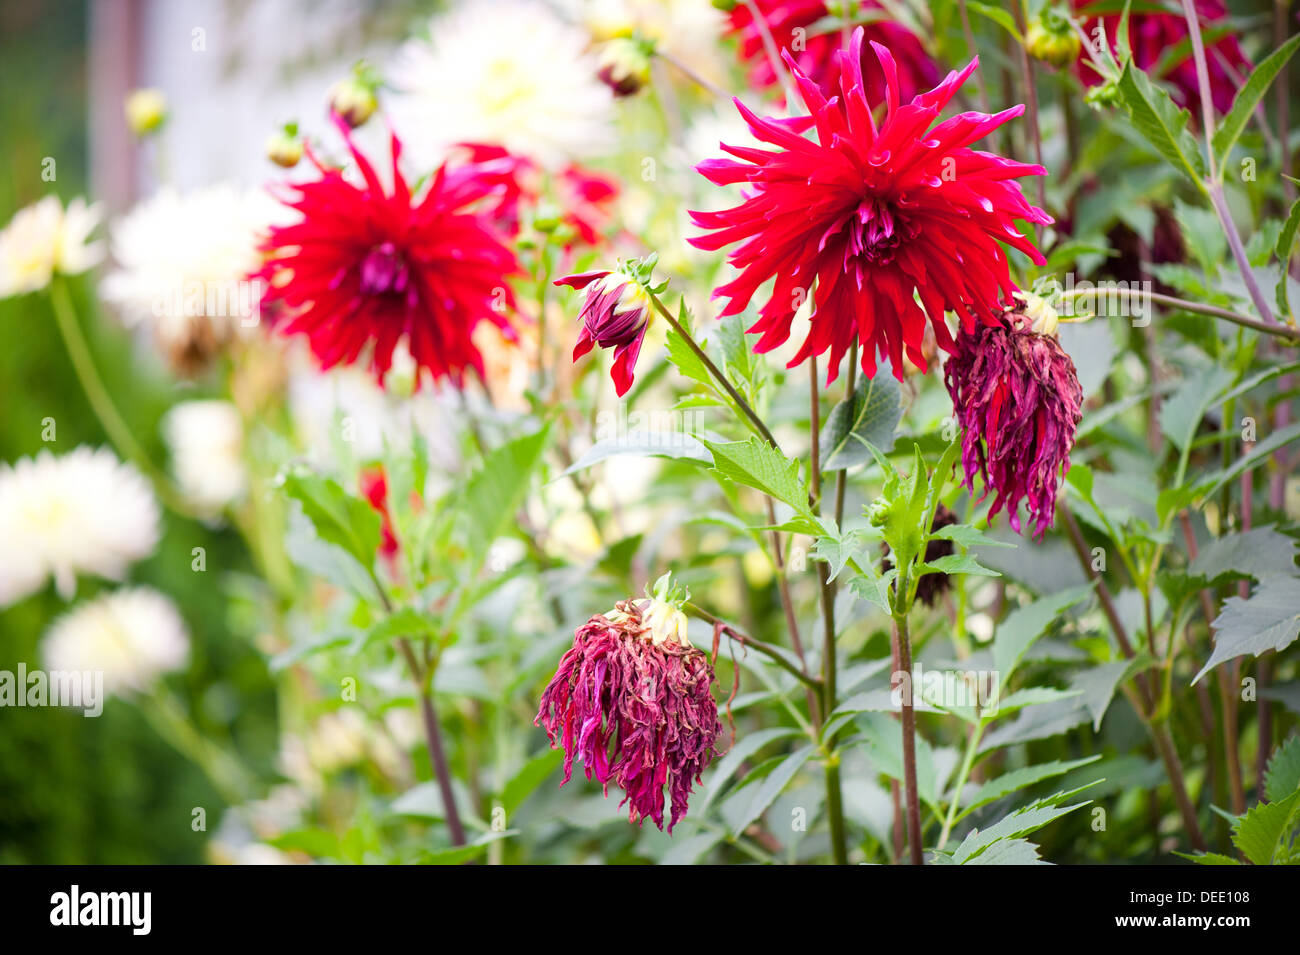 Wilted dahlia flower stock photos wilted dahlia flower stock fading flowerheads of red dahlia blooming stock image izmirmasajfo